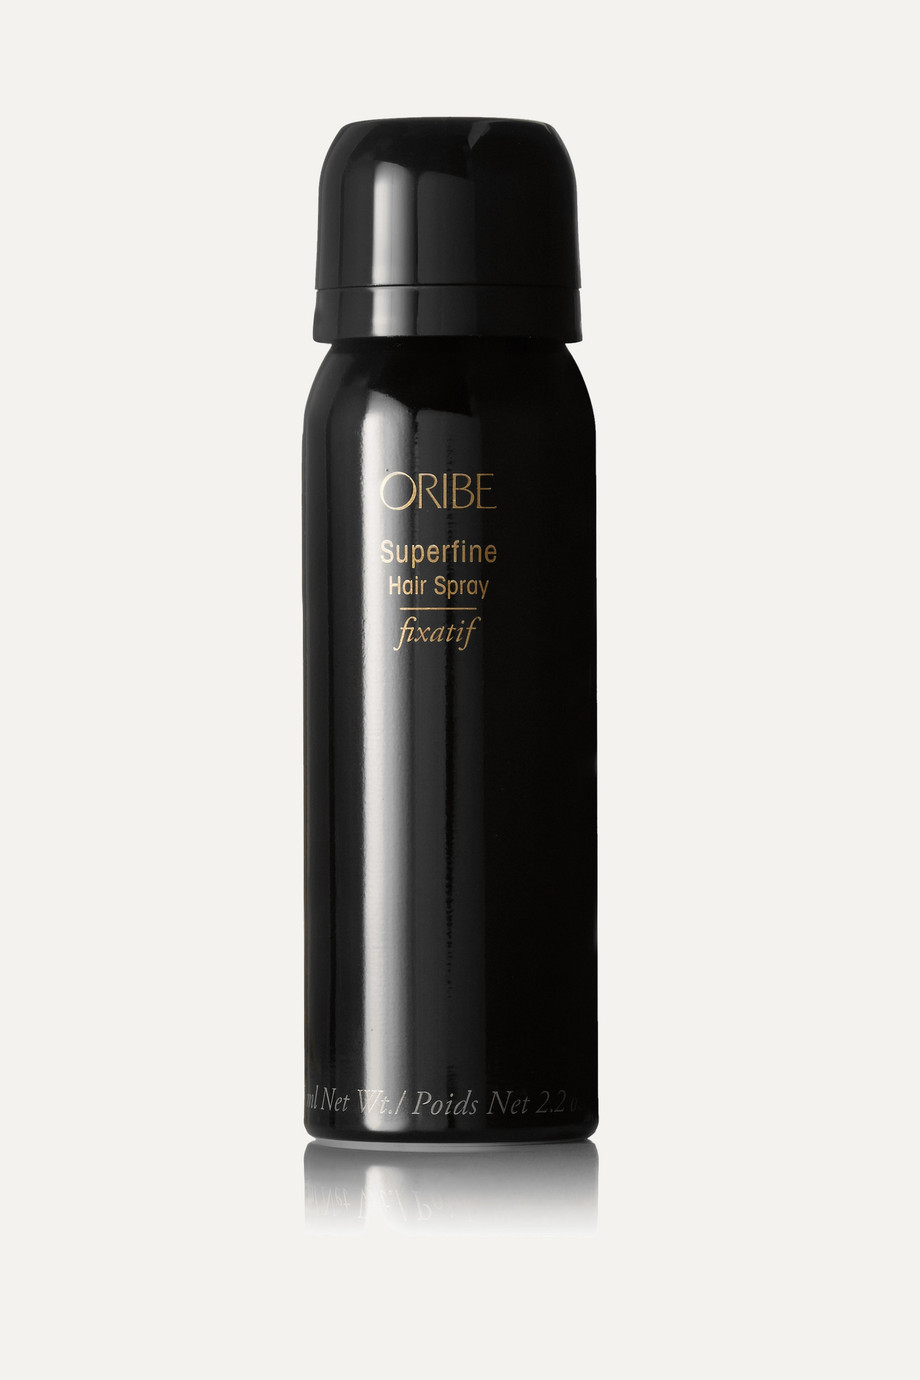 Oribe Travel-Sized Superfine Hair Spray, 75ml